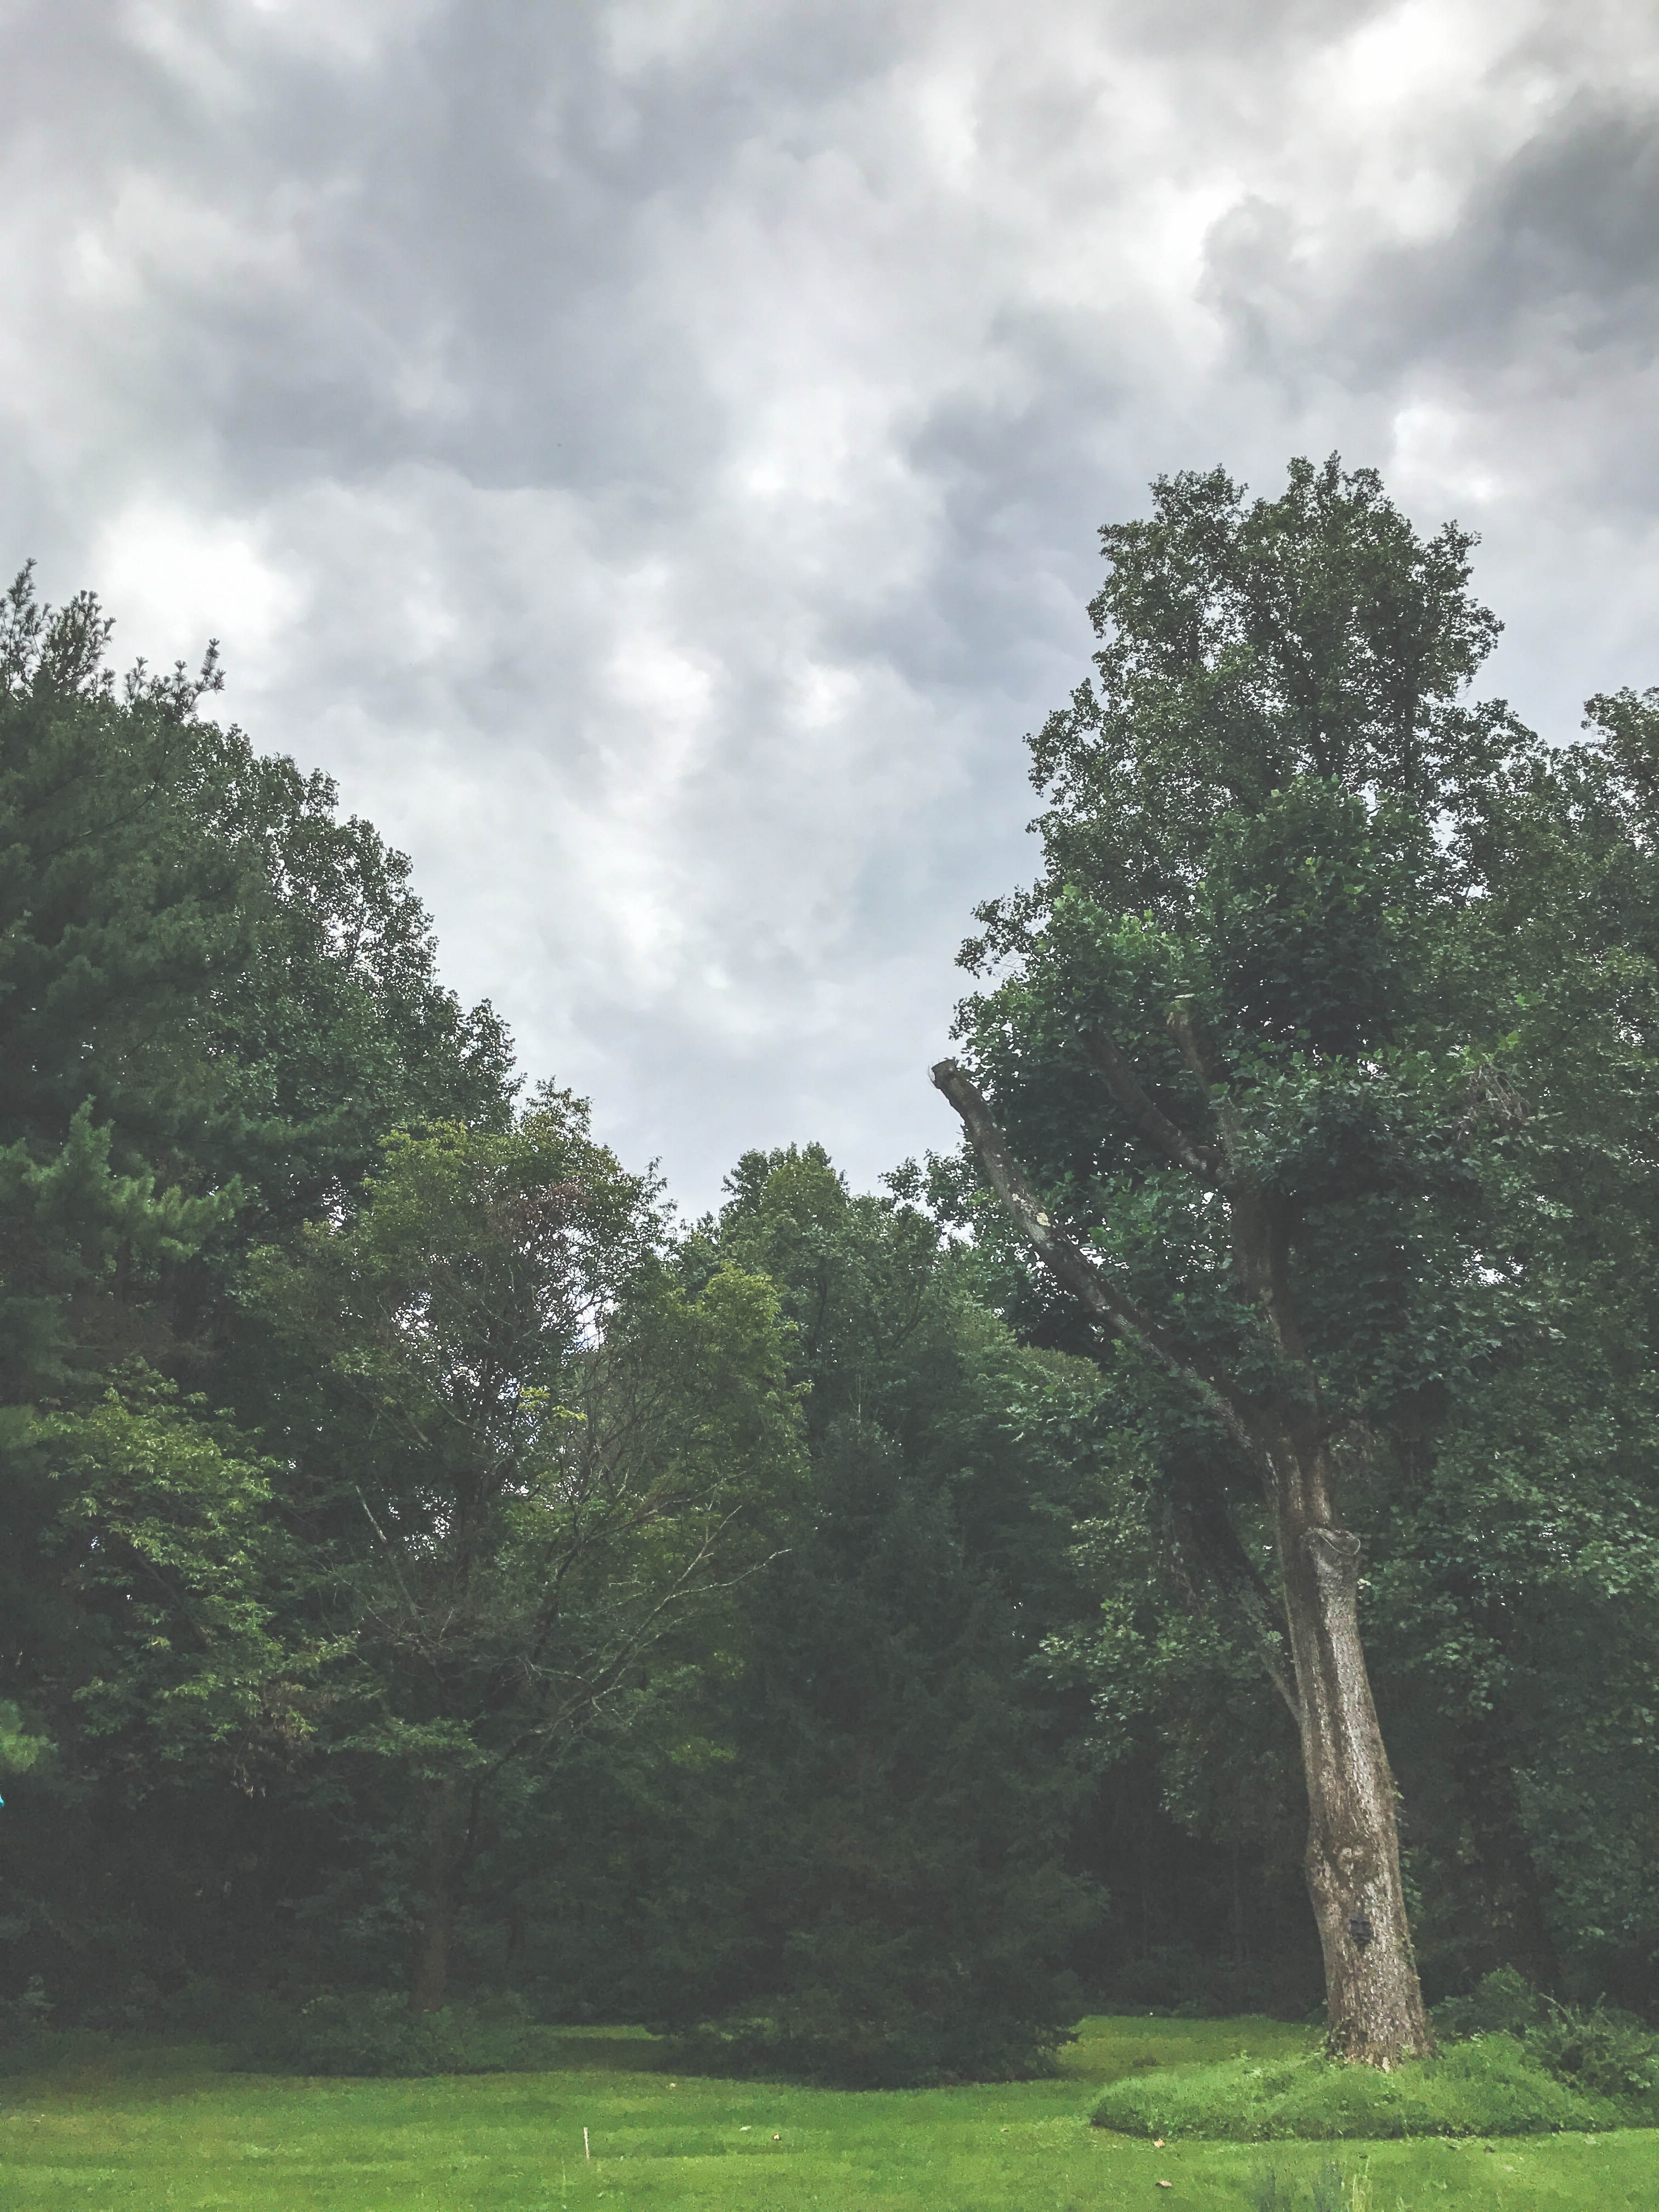 Green trees under the cloudy sky photo